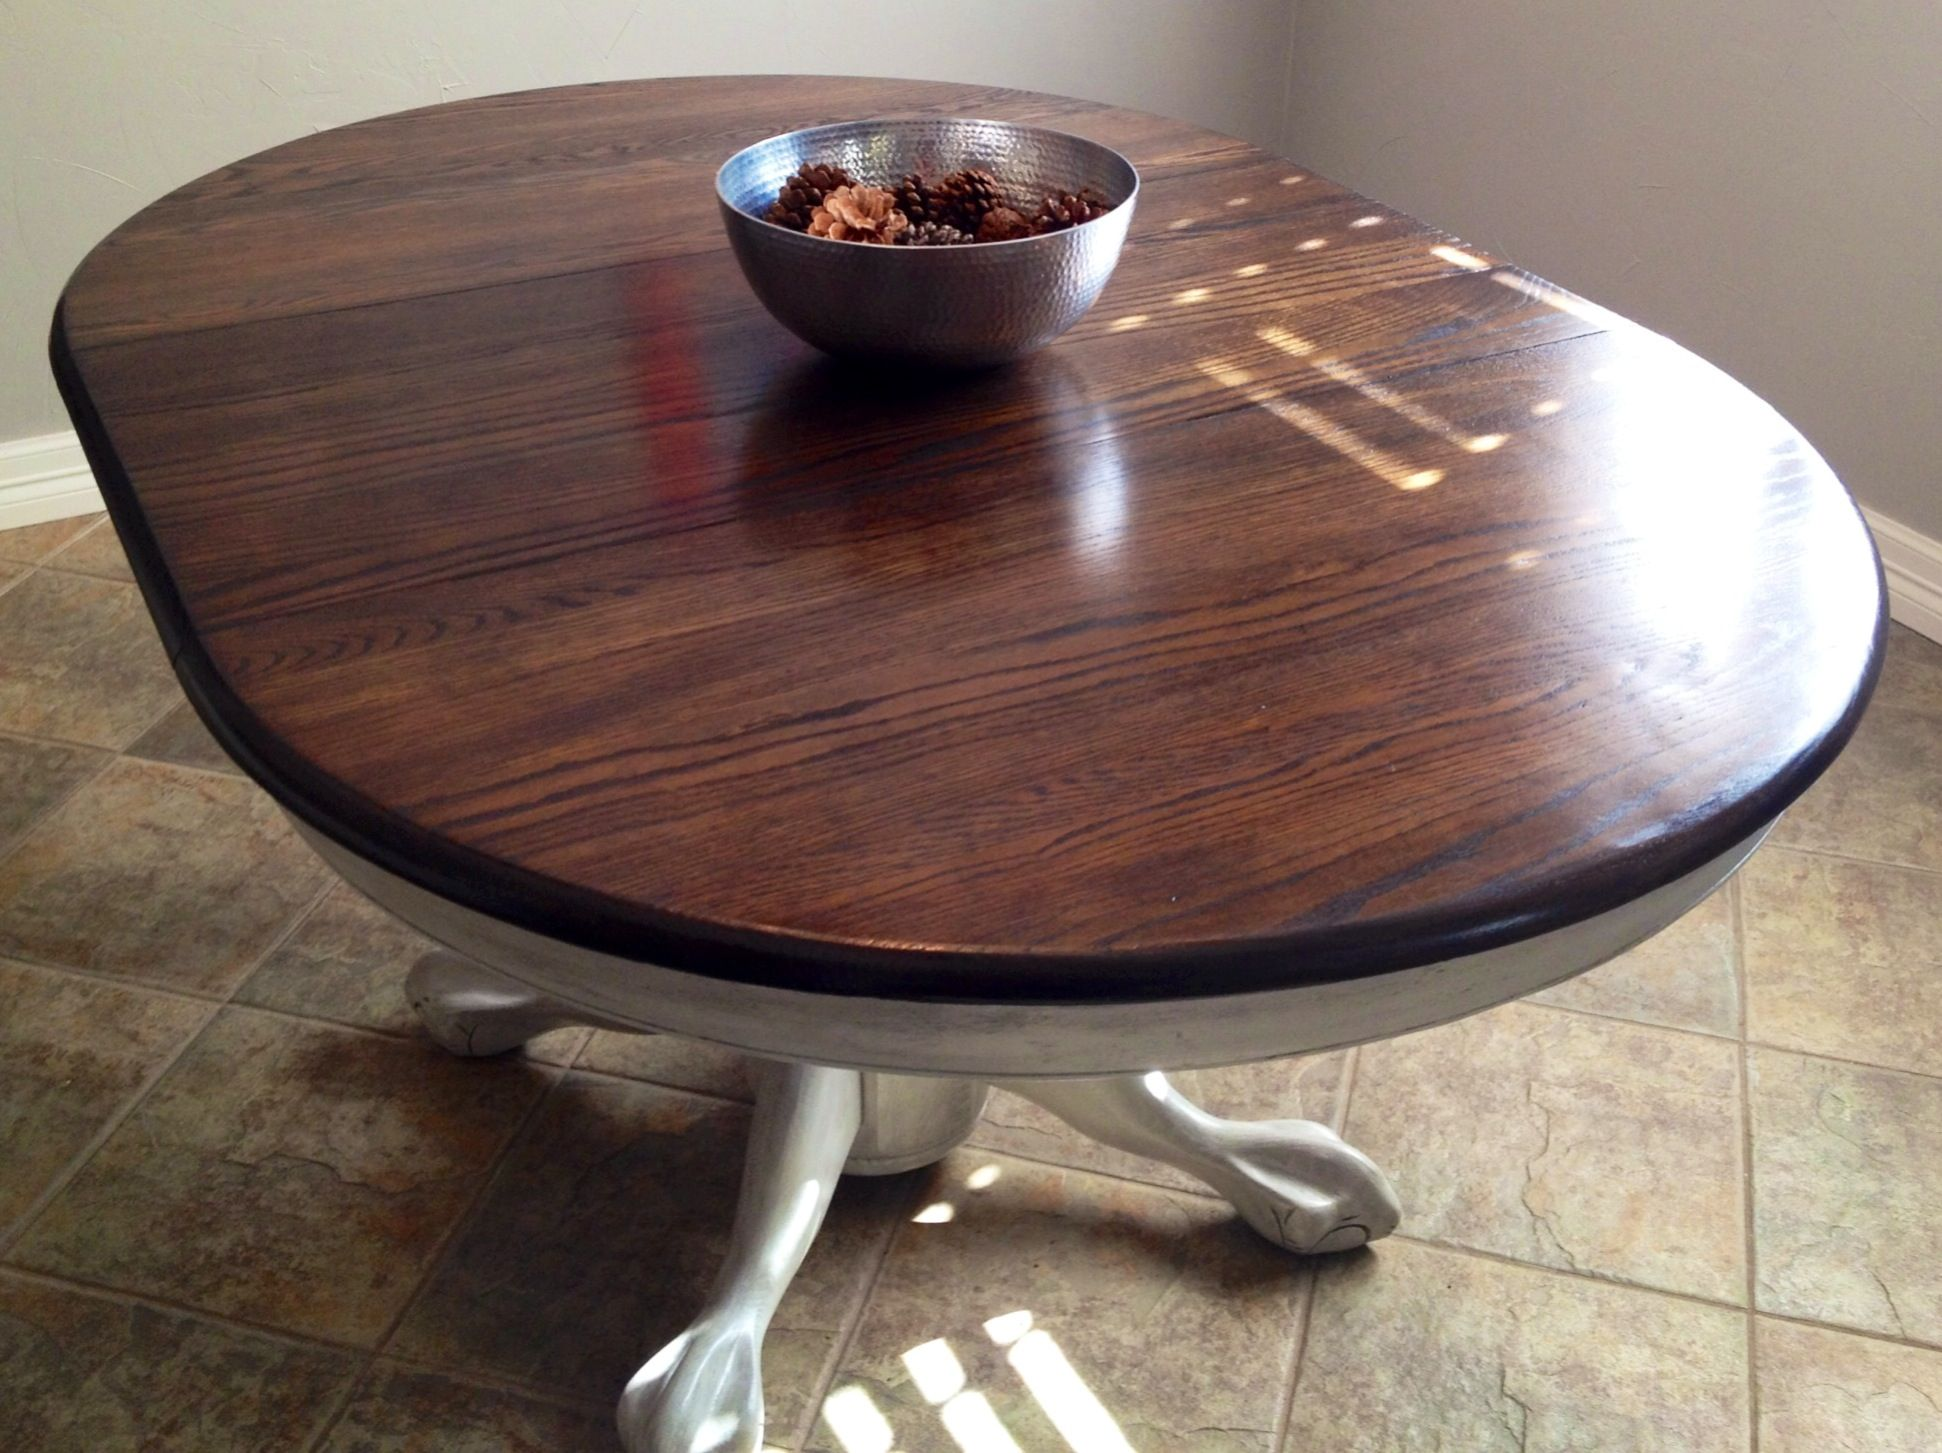 refinish kitchen table Antique claw foot pedestal table refinished in white paint on the base and glazed with Martha Stuart black coffee Top stained dark walnut